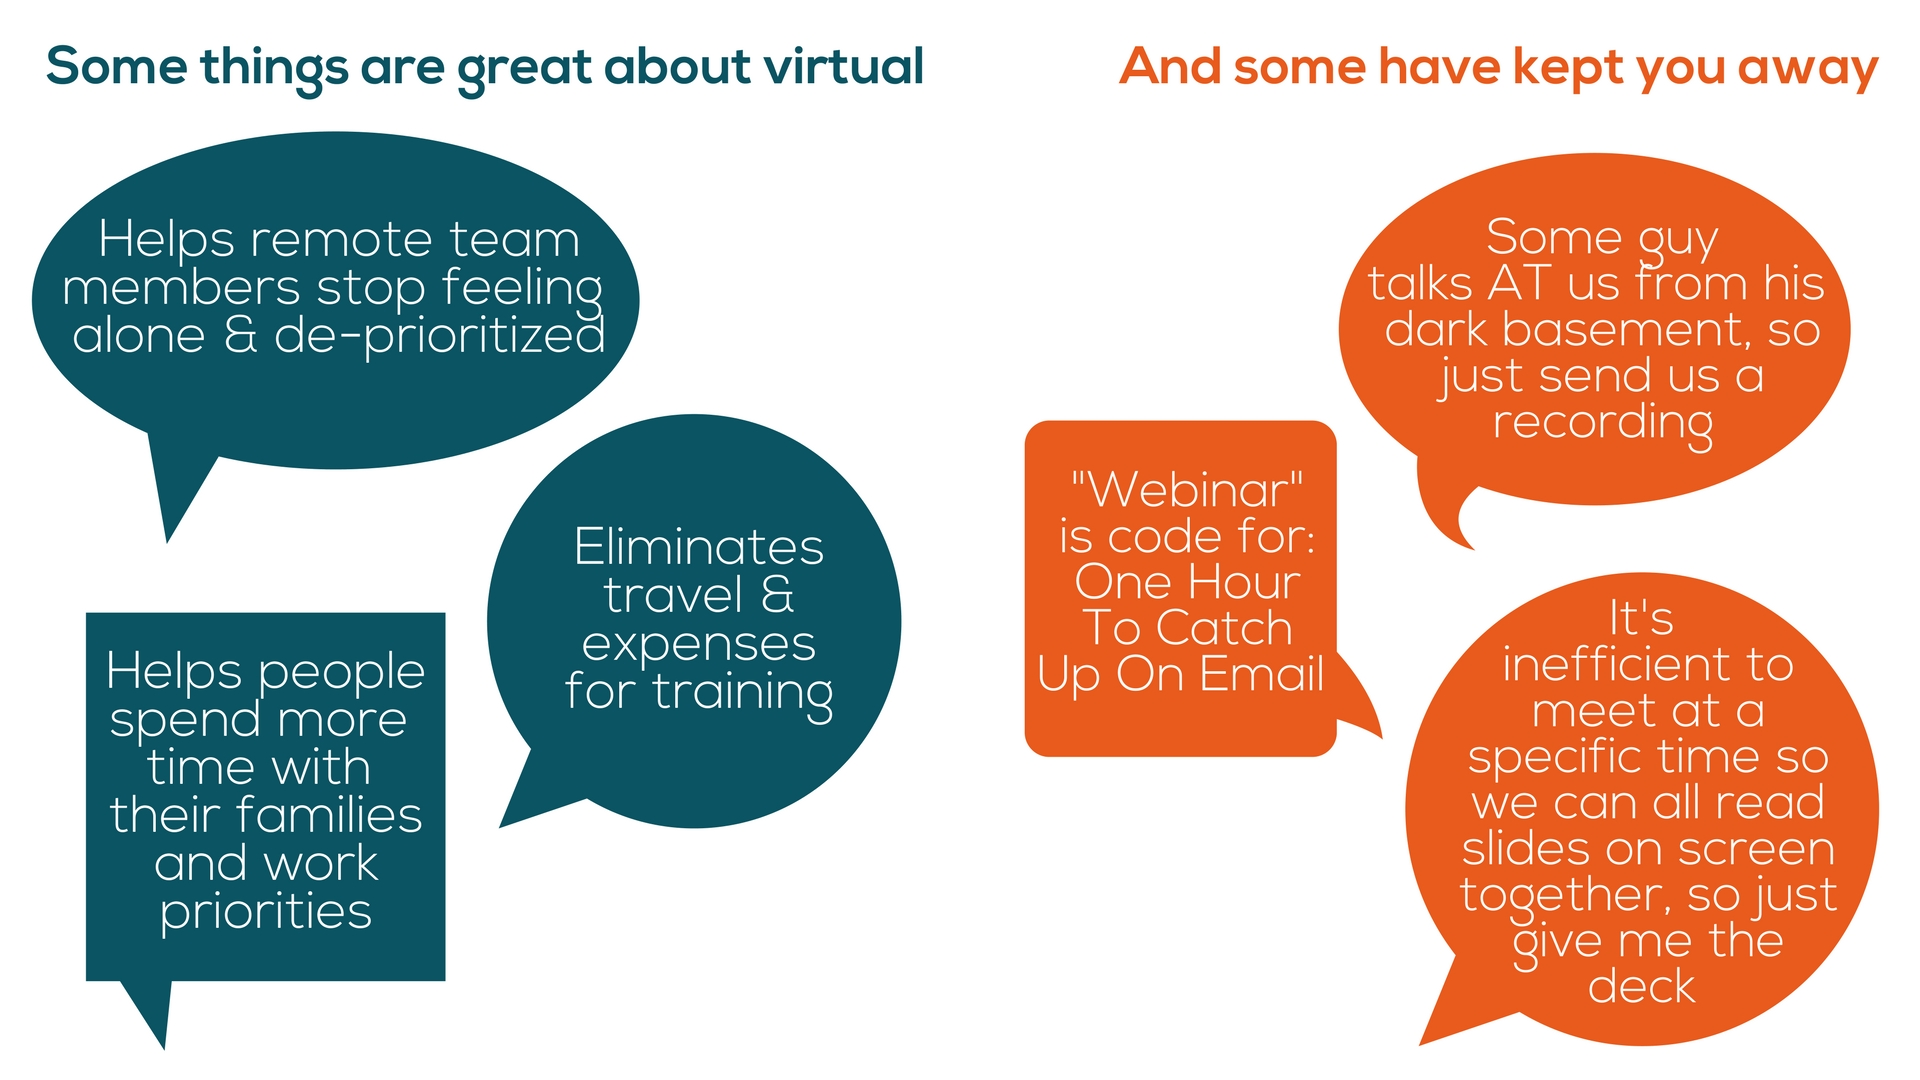 Some things are great about virtual training, and some have kept you away